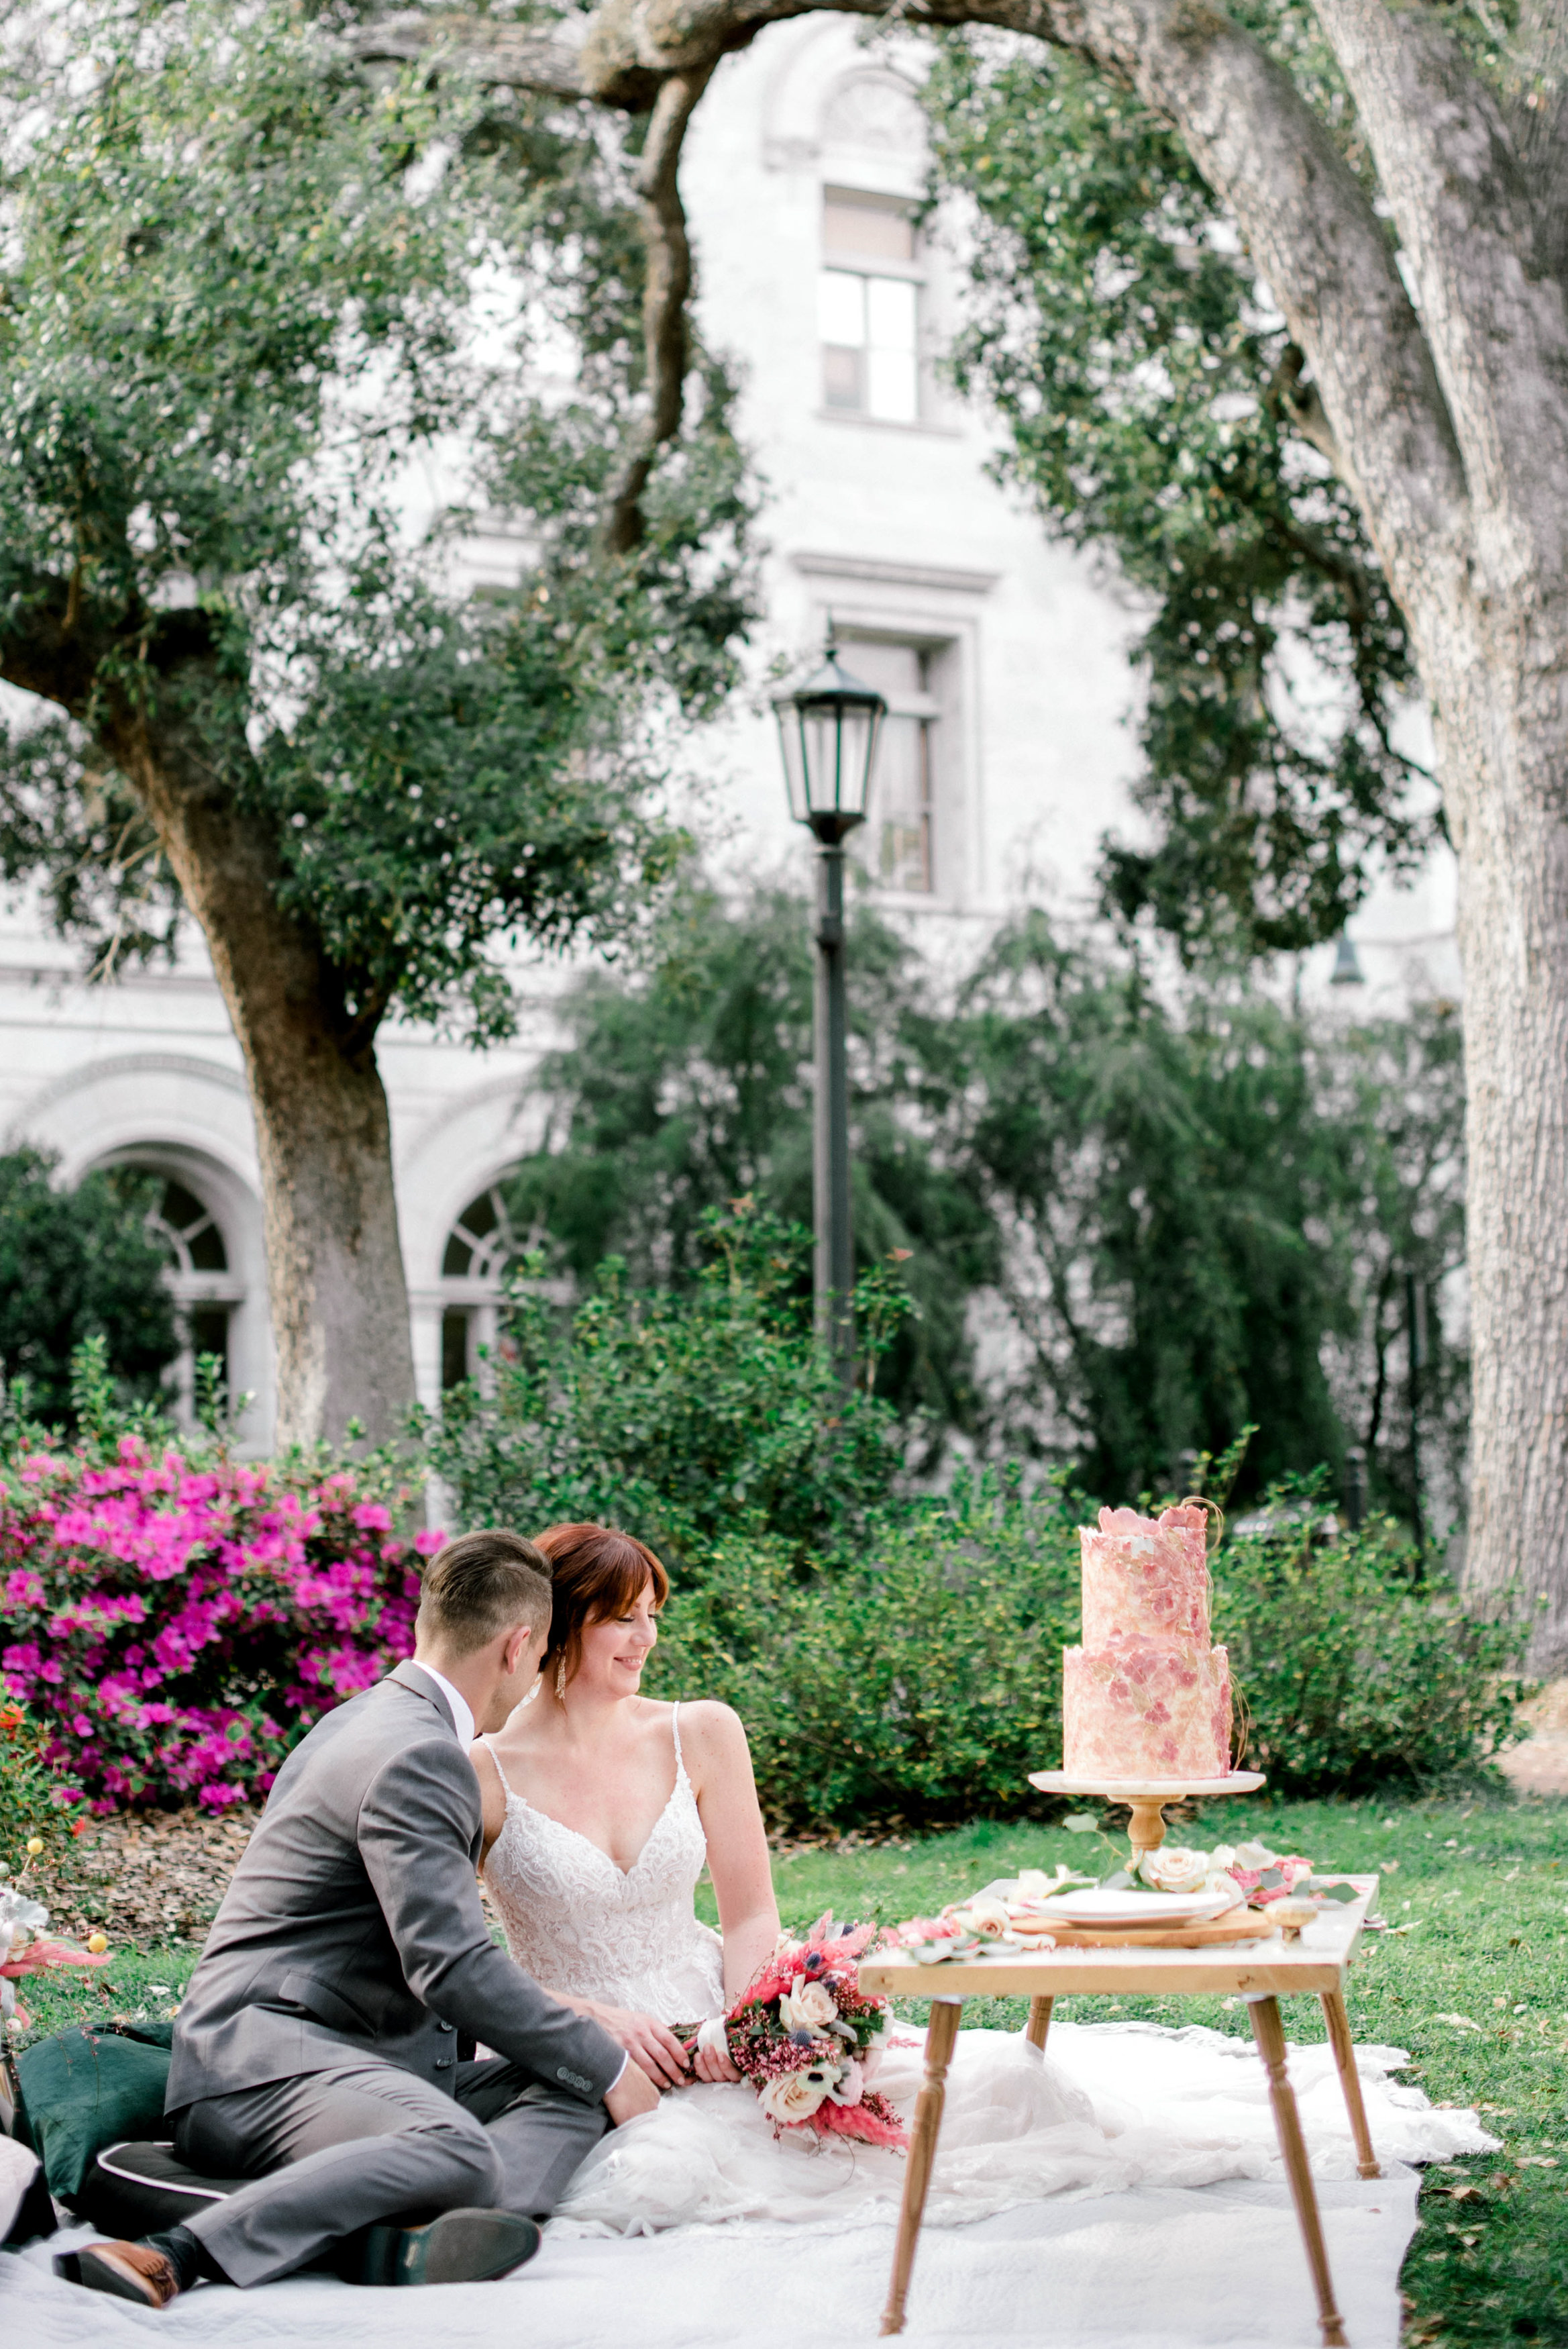 Savannah Picnic Elopement Weddings